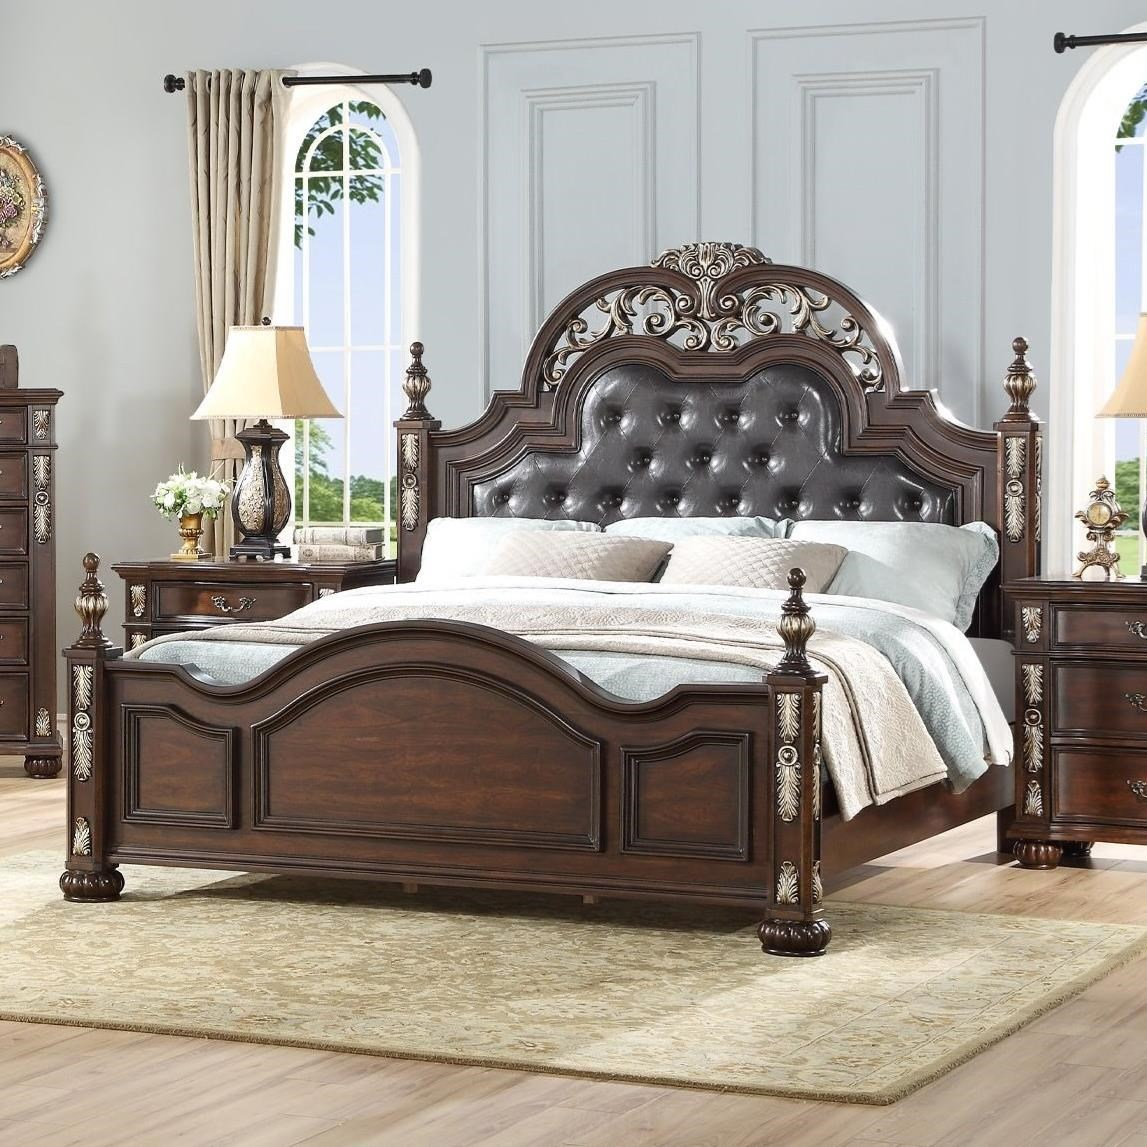 Maximus Queen Poster Bed with Upholstered Headboard by New Classic at Beck's Furniture